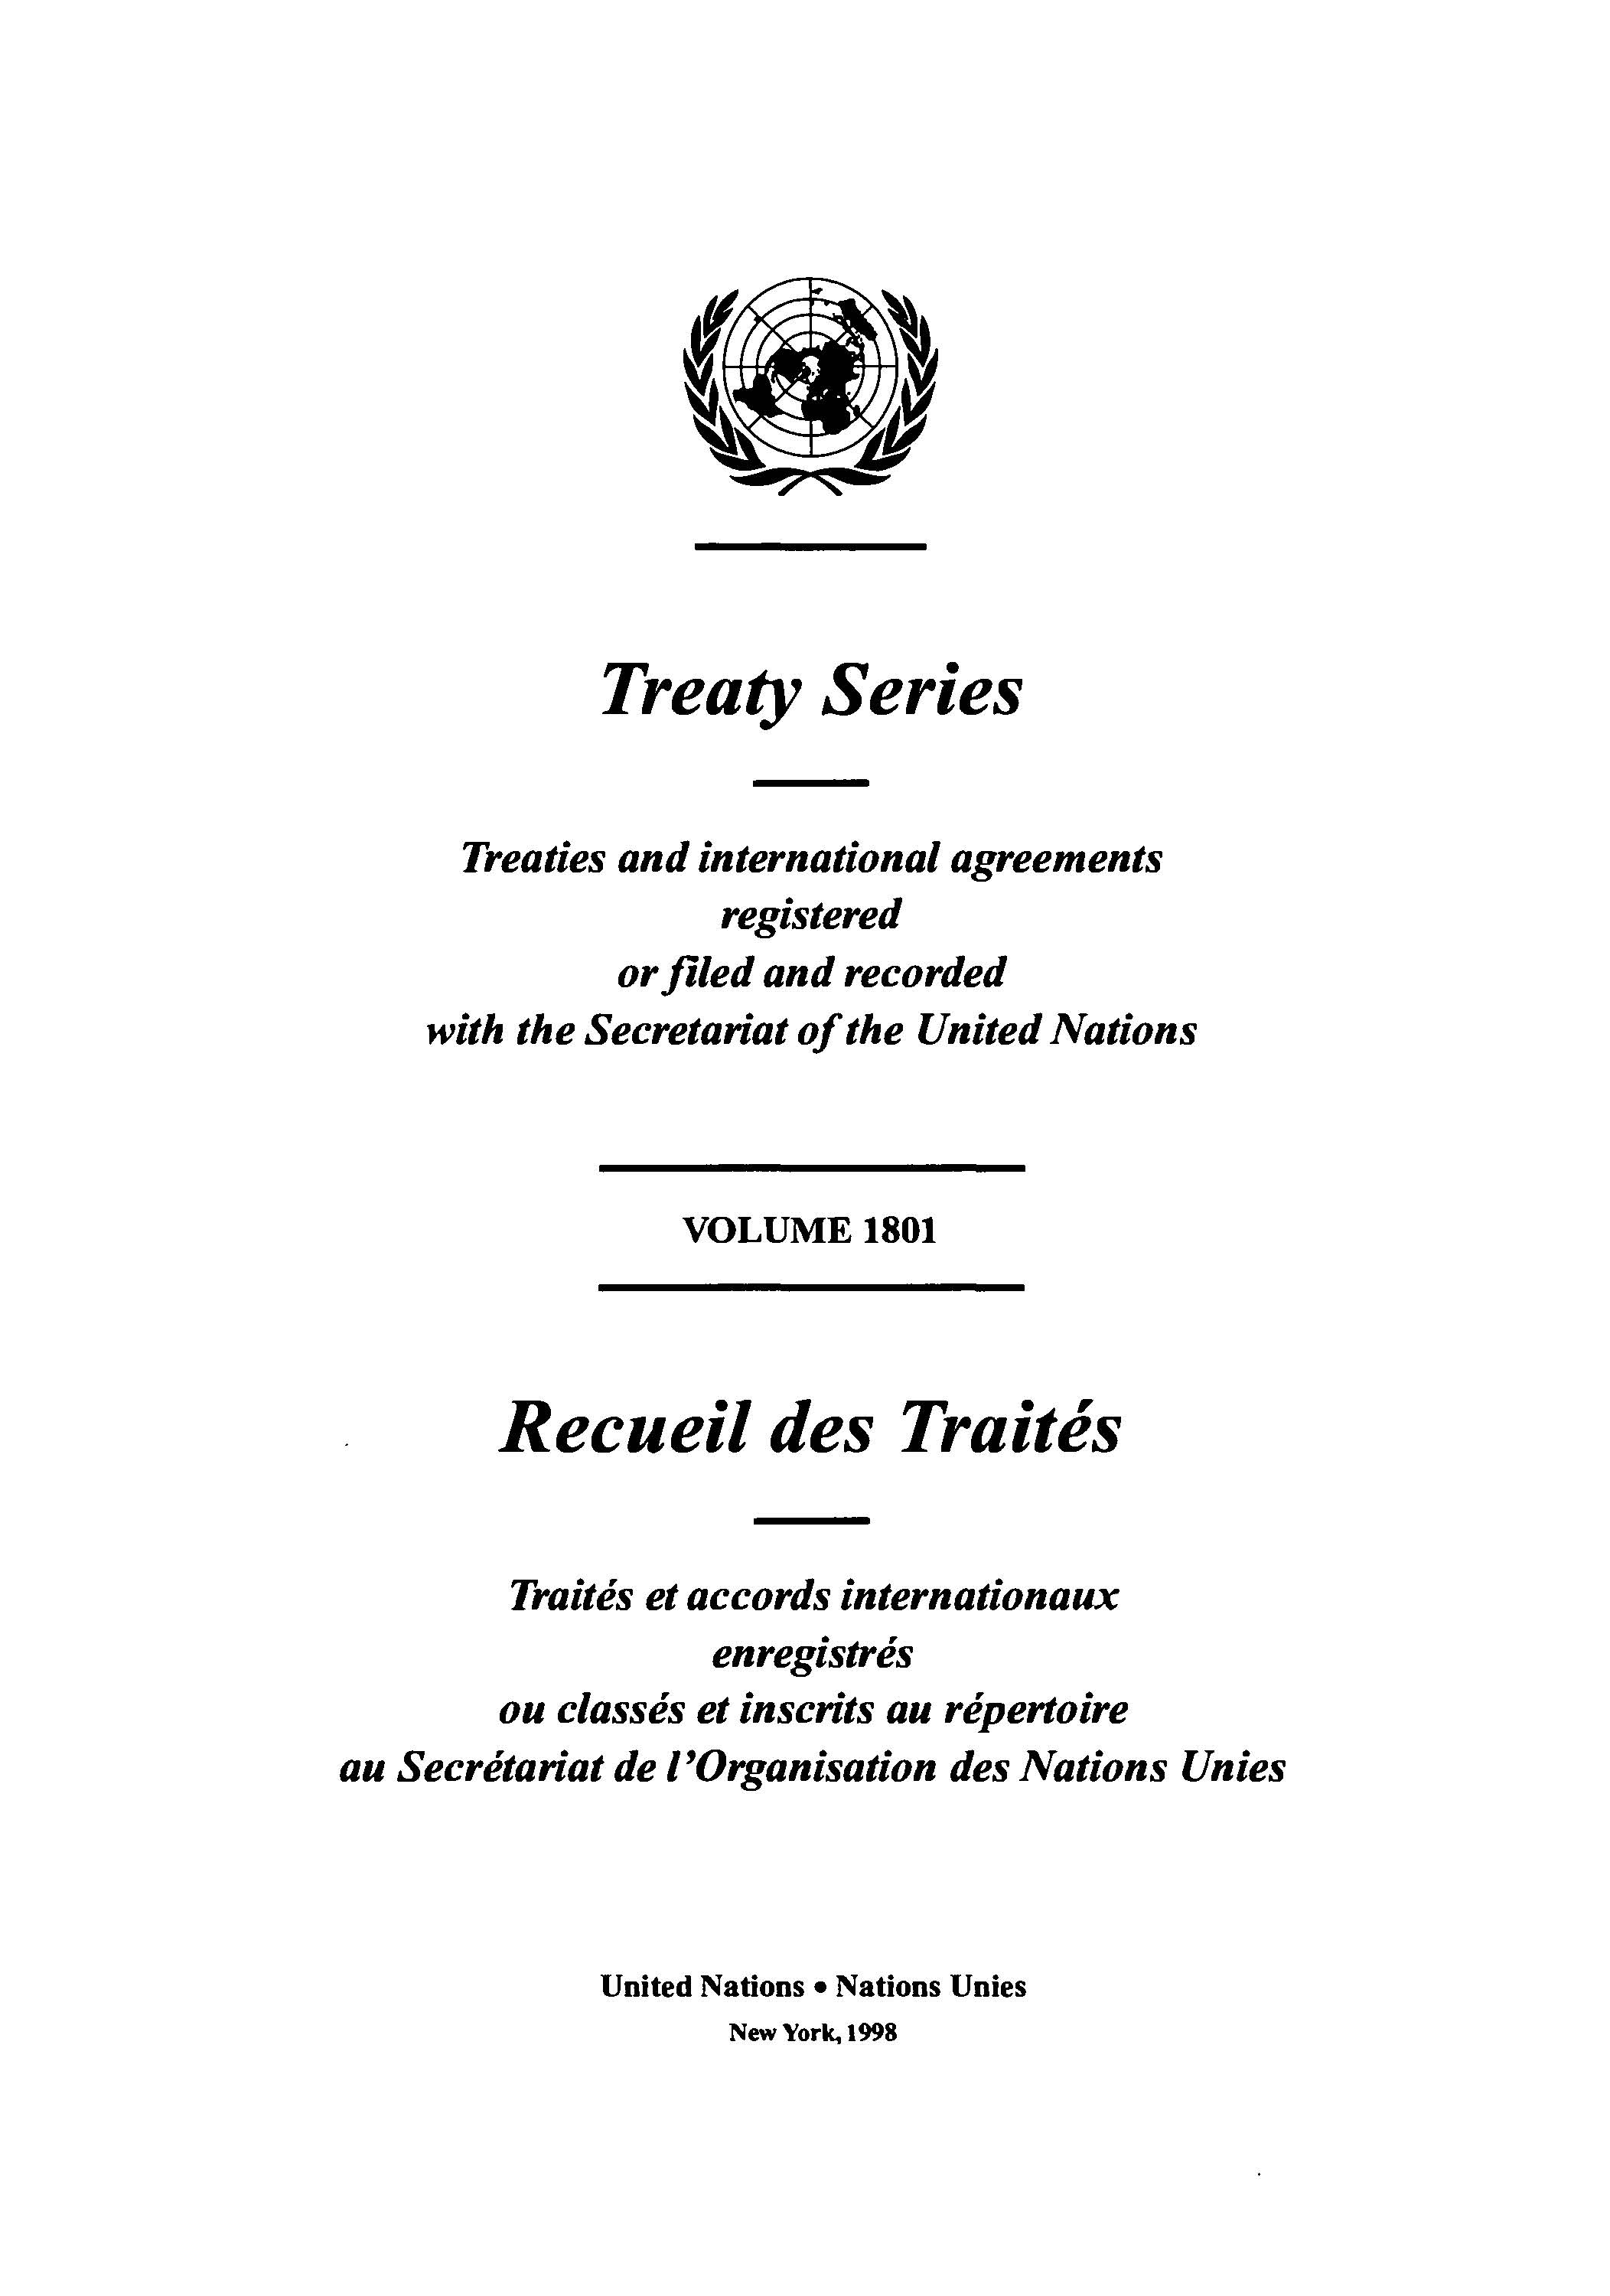 TREATY SERIES 1801